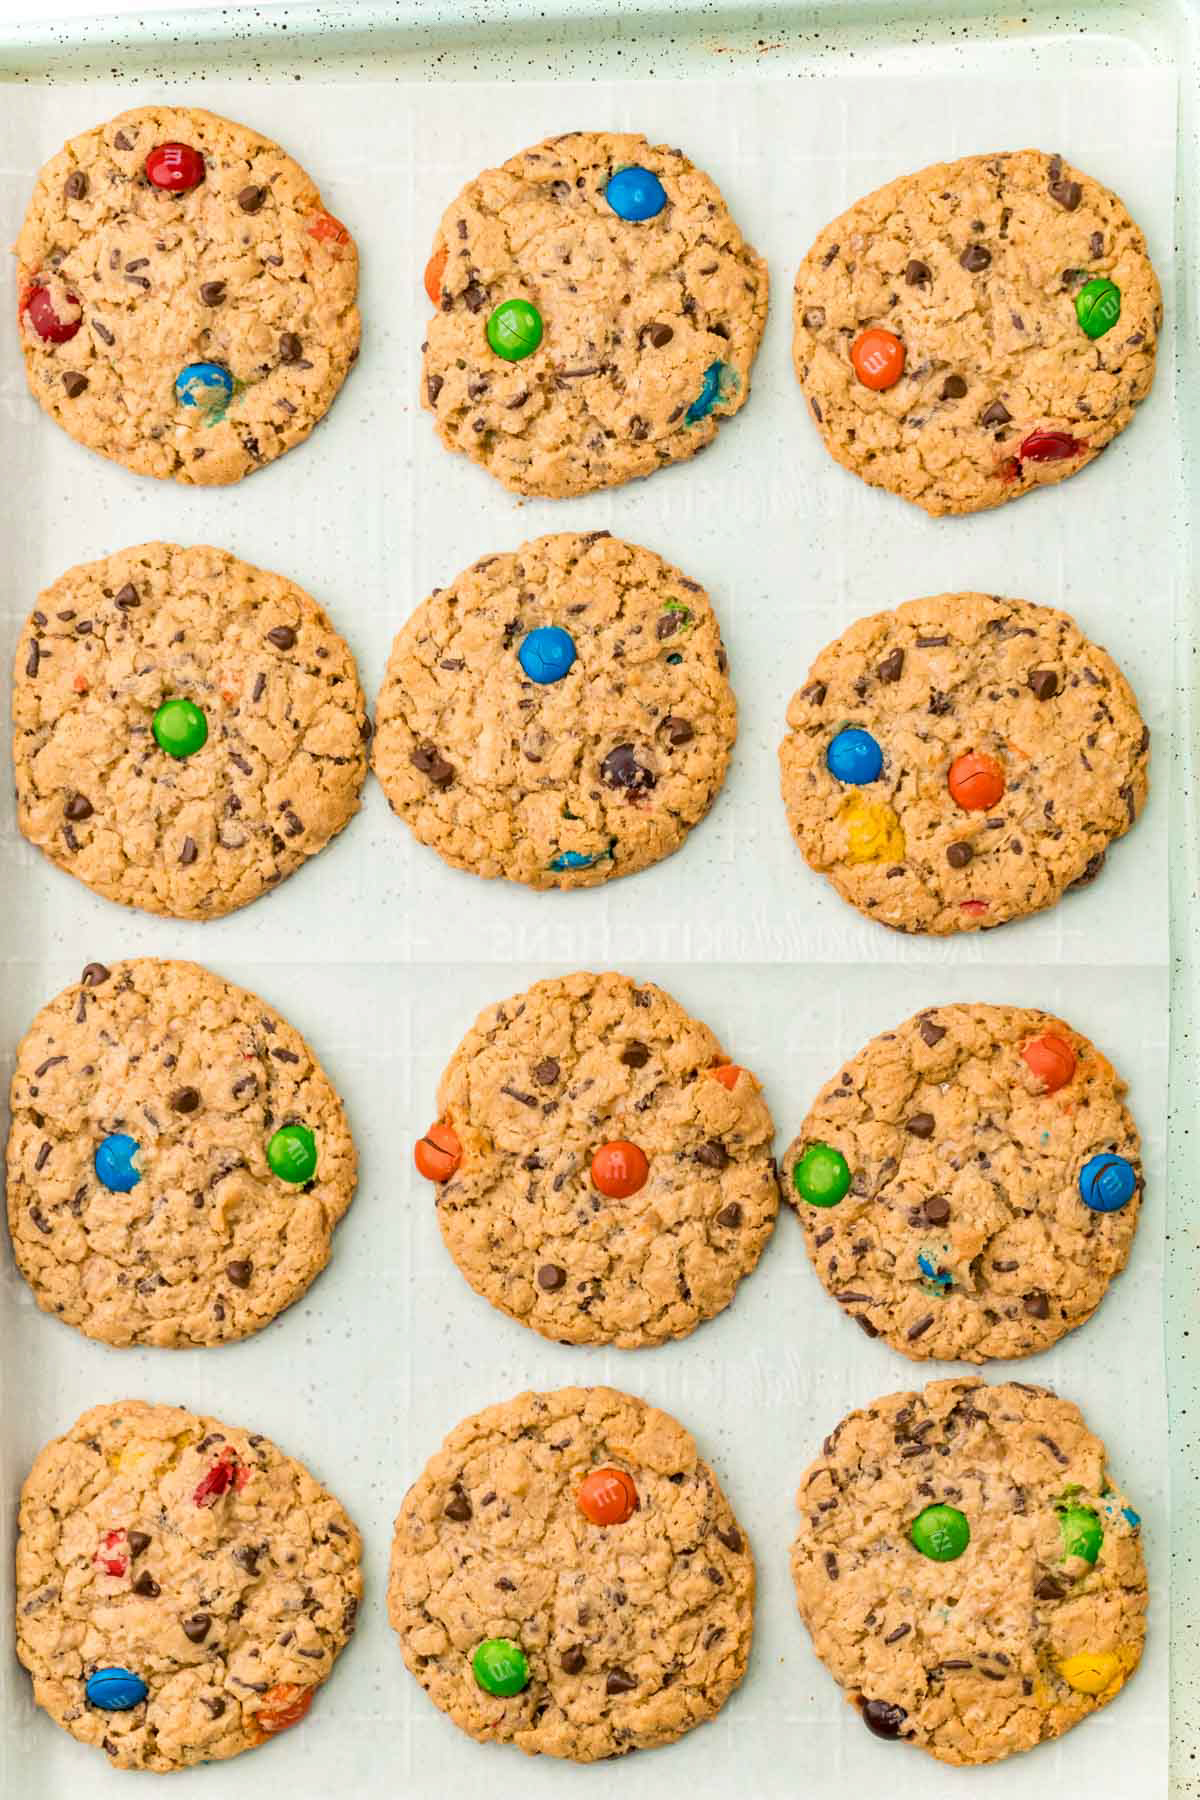 baked monster cookies on a baking sheet